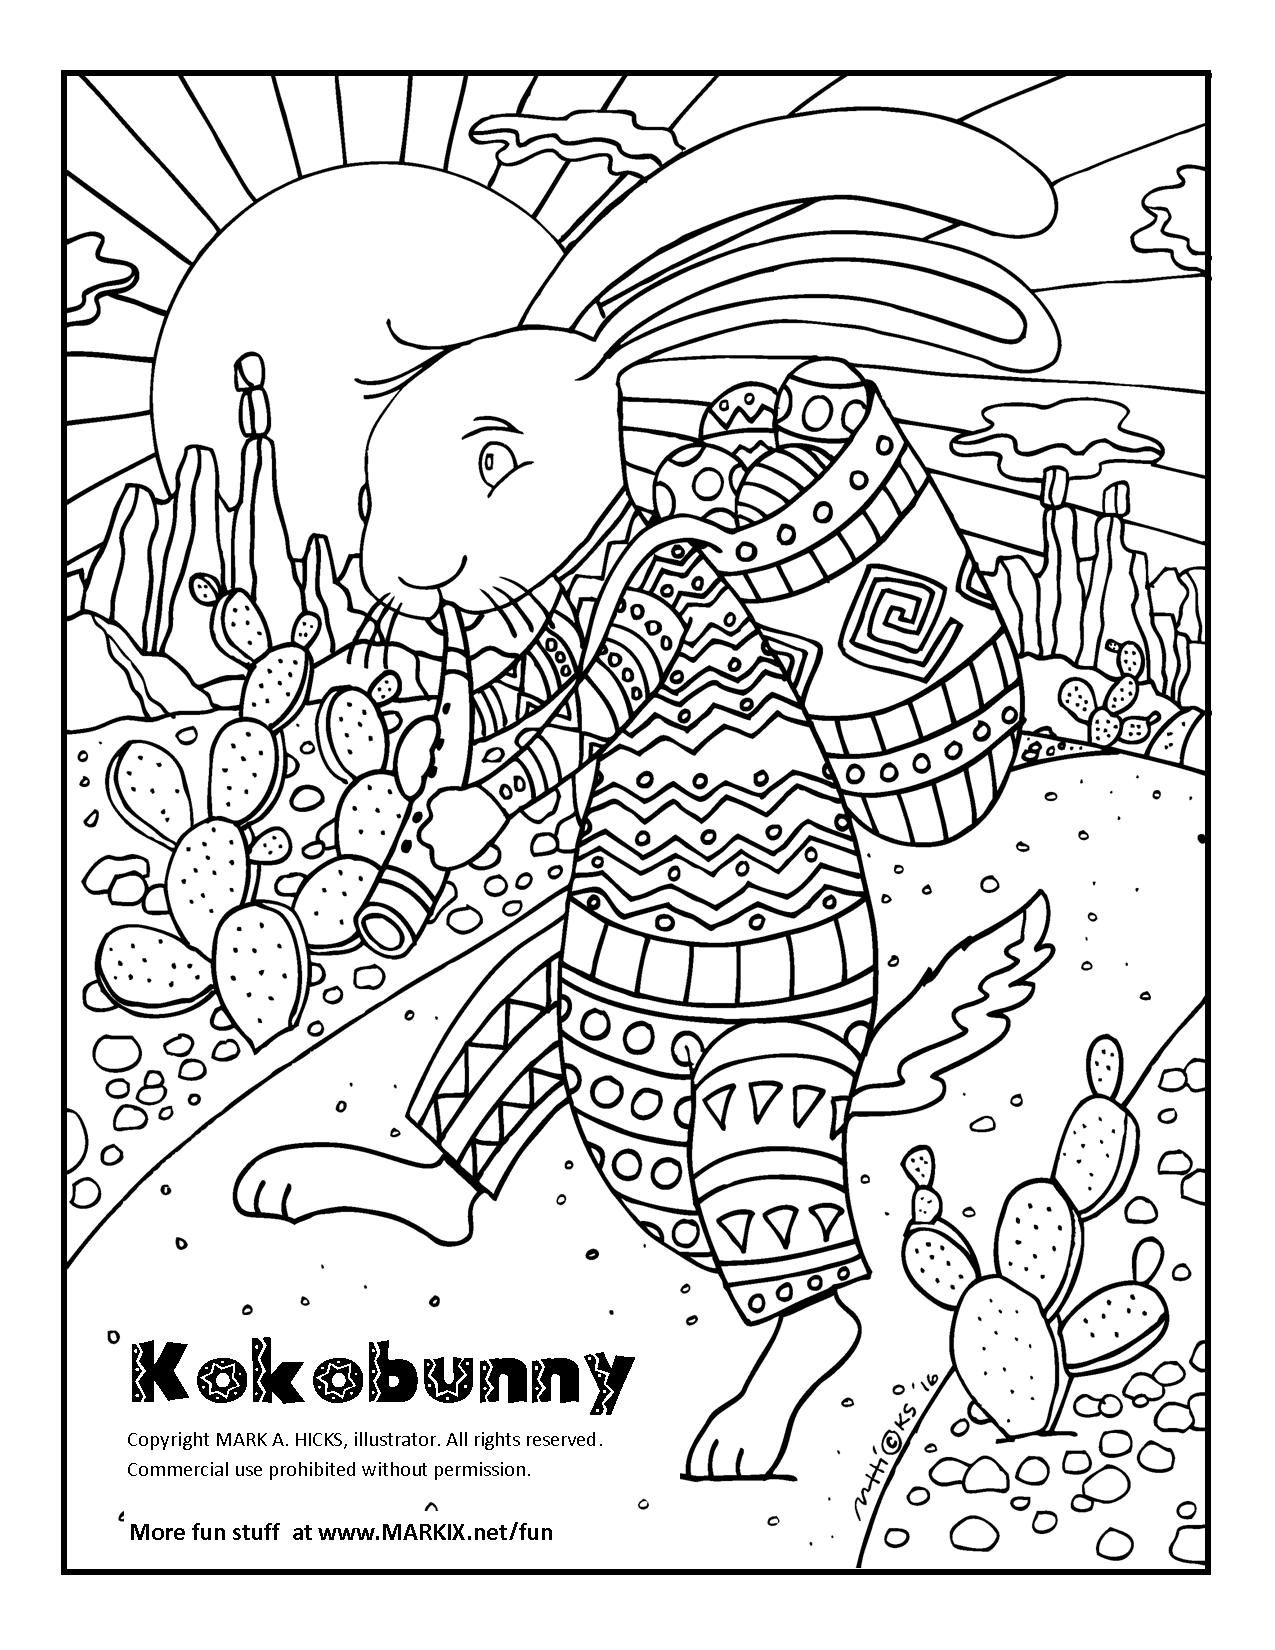 Bunny Kokopelli Coloring Page Here Is A Coloring Page For Adults And Other Big Children Featu Bunny Coloring Pages Easter Bunny Colouring Easter Coloring Pages